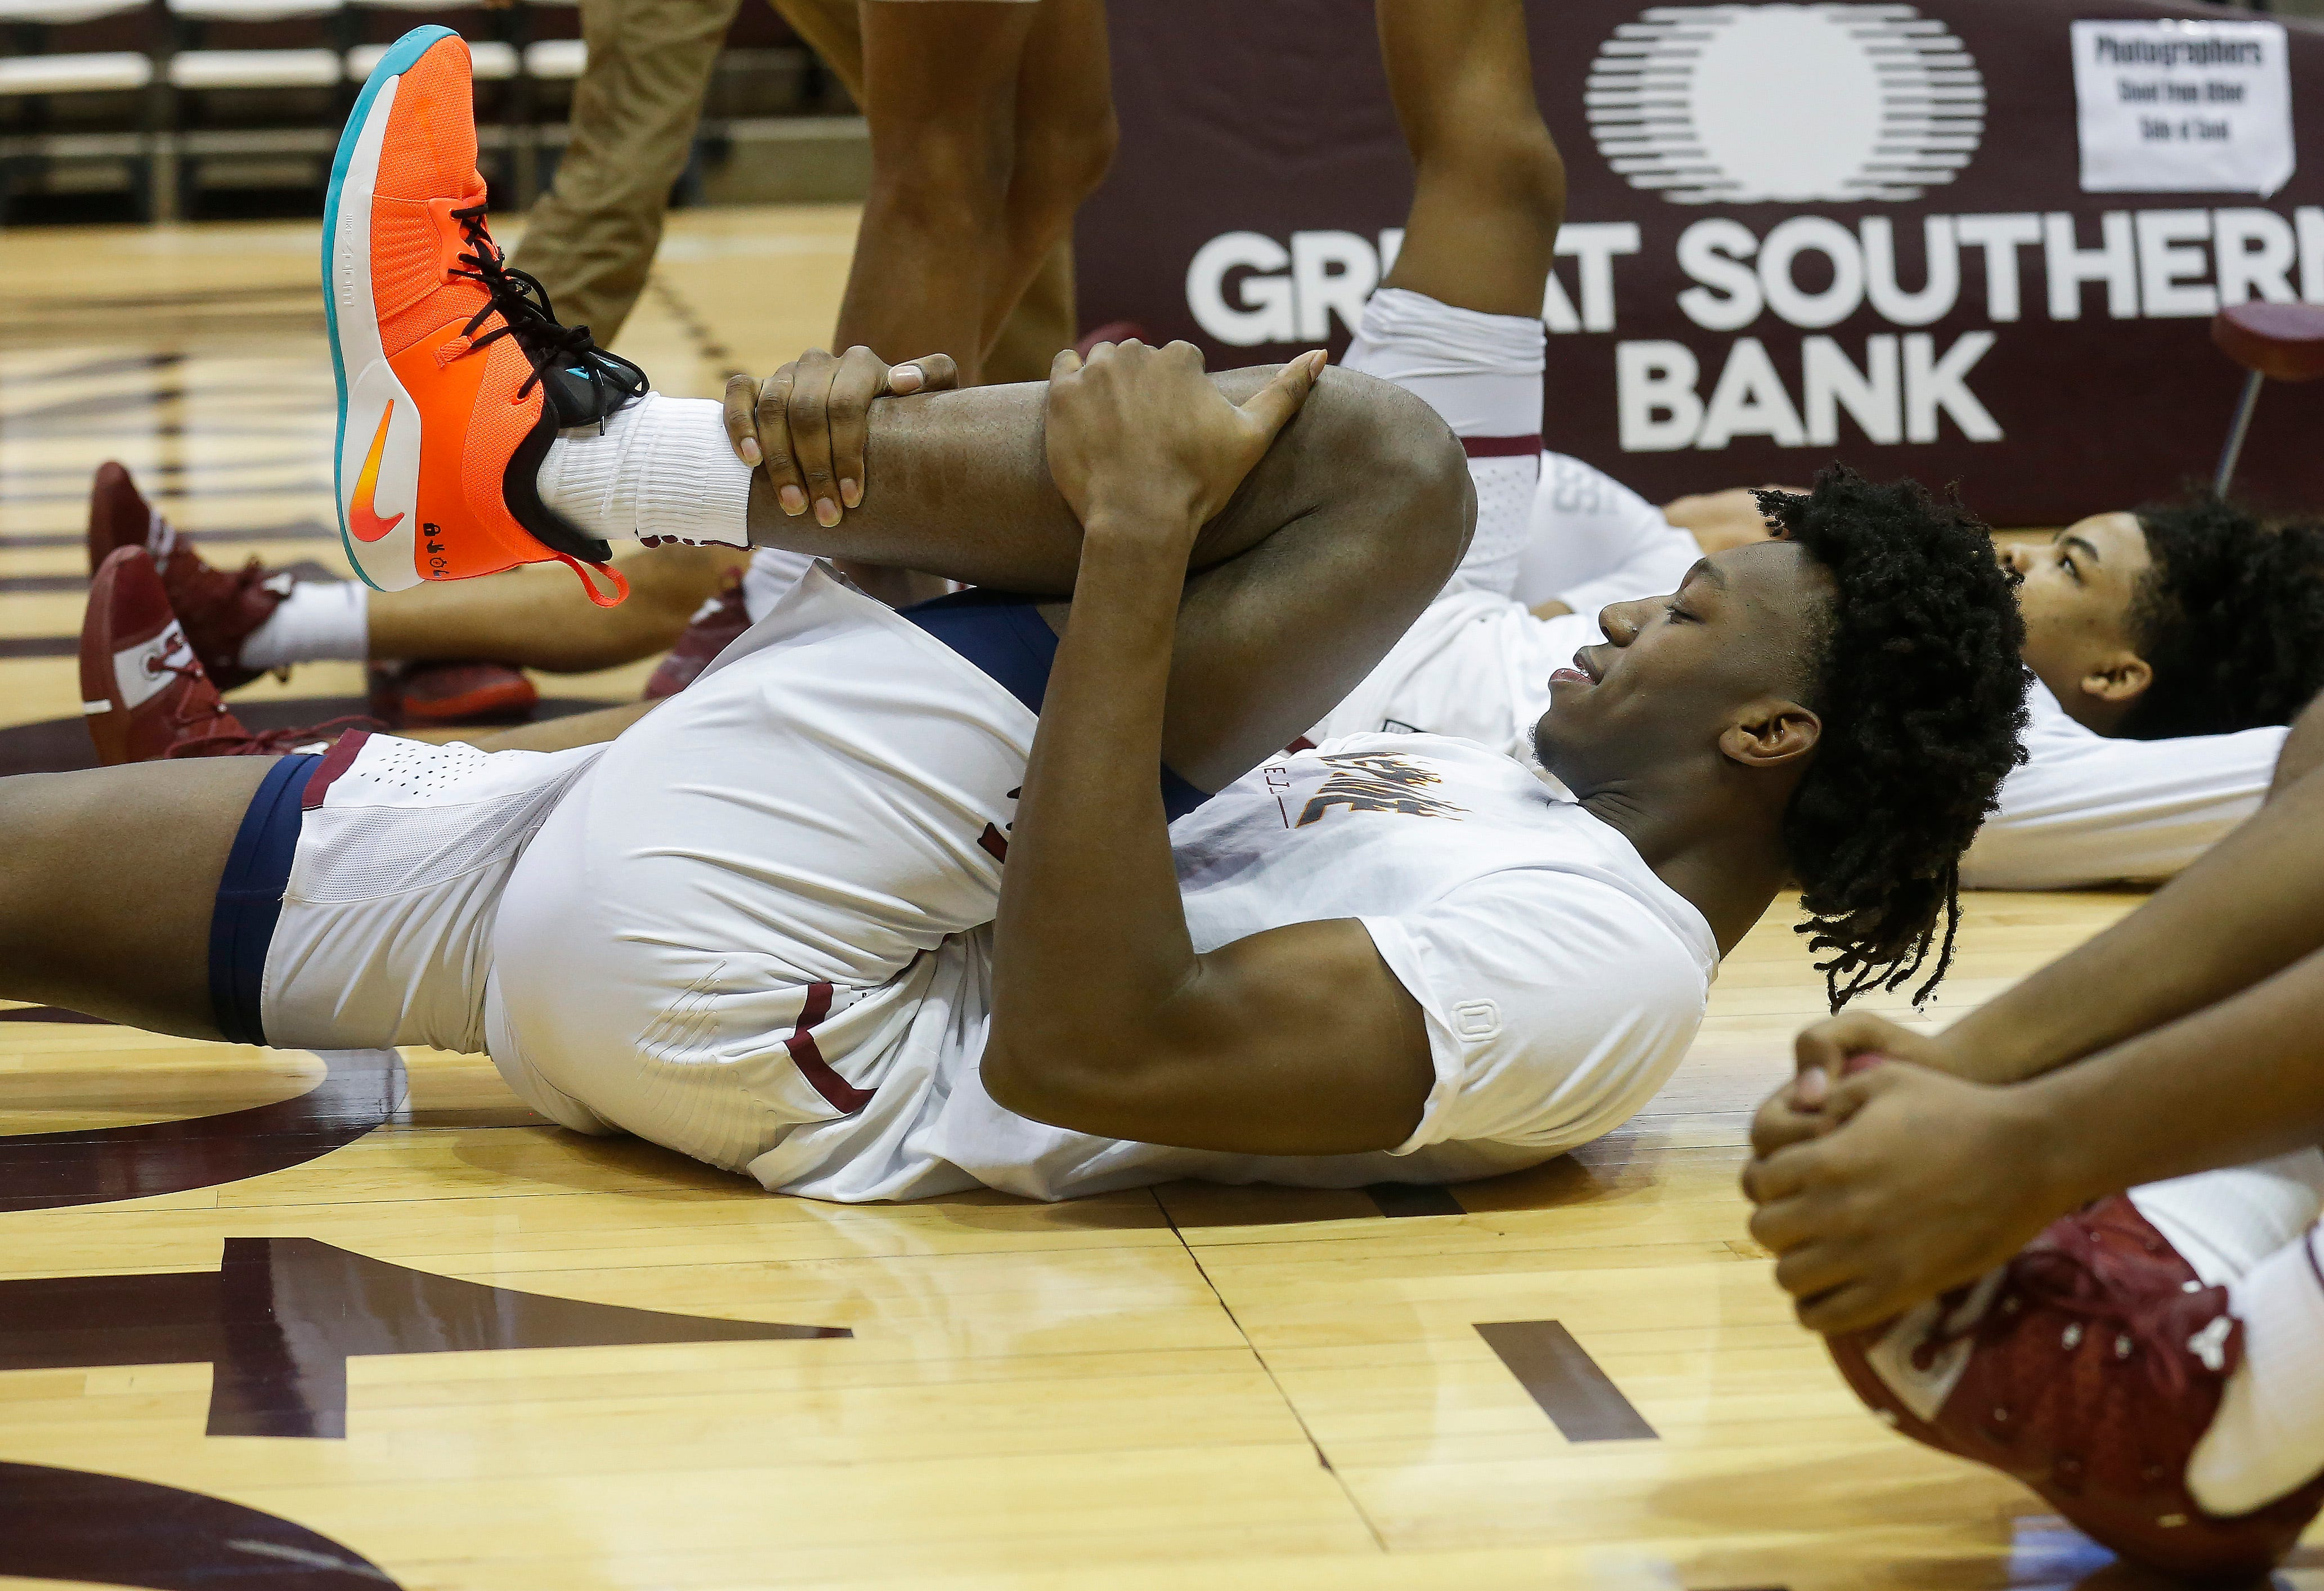 James Wiseman, of Memphis East High School, stretches before his team's game in the Bass Pro Shops Tournament of Champions at JQH Arena on Thursday, Jan. 17, 2019.